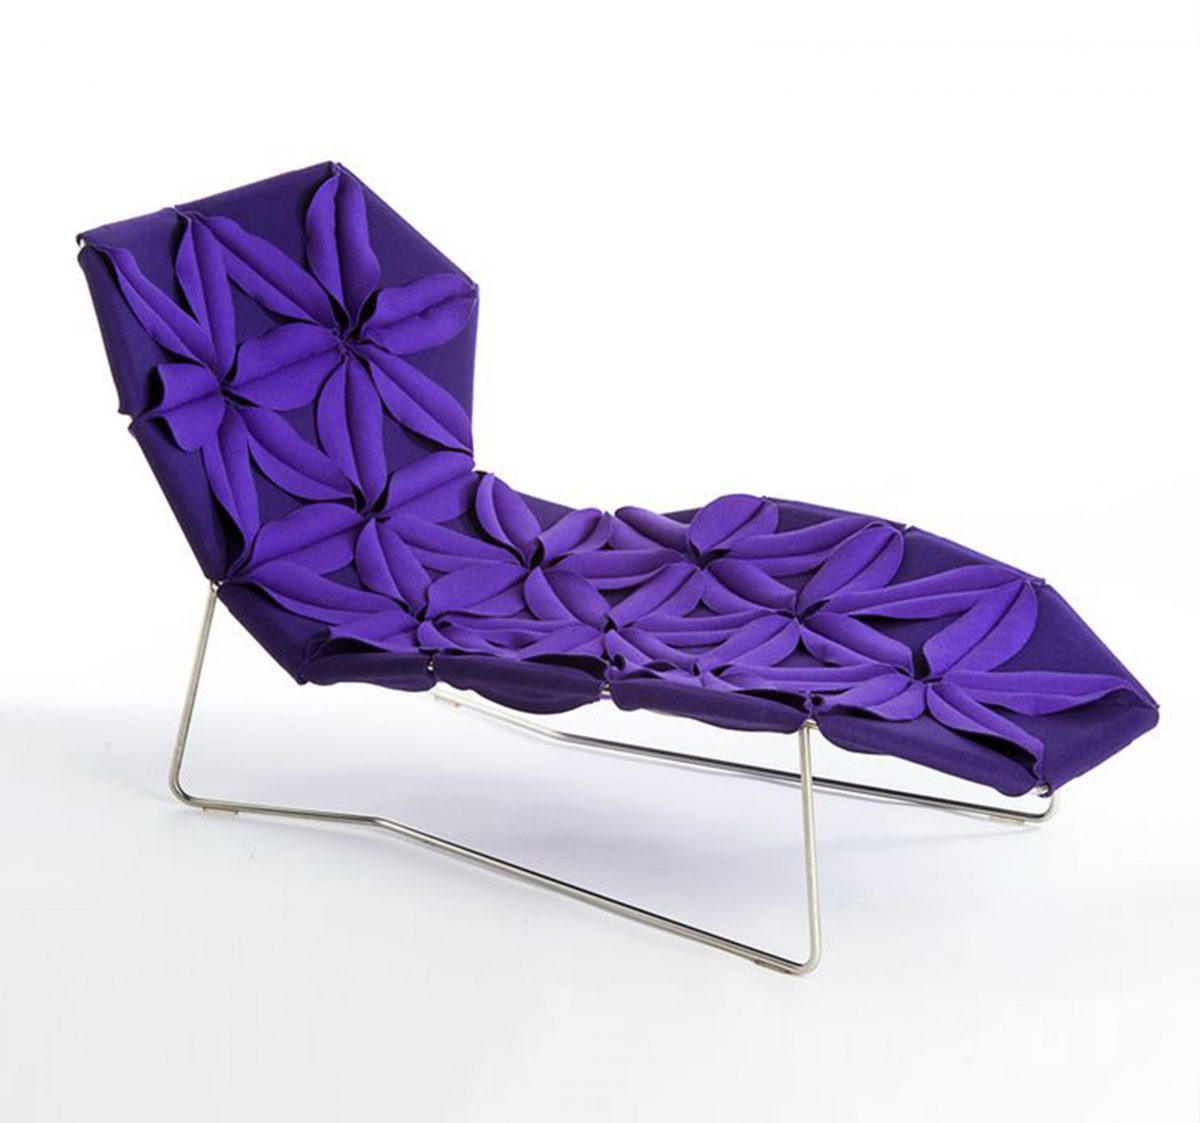 2. Antiboldi lounge chair, Patricia Urquiola for Moroso